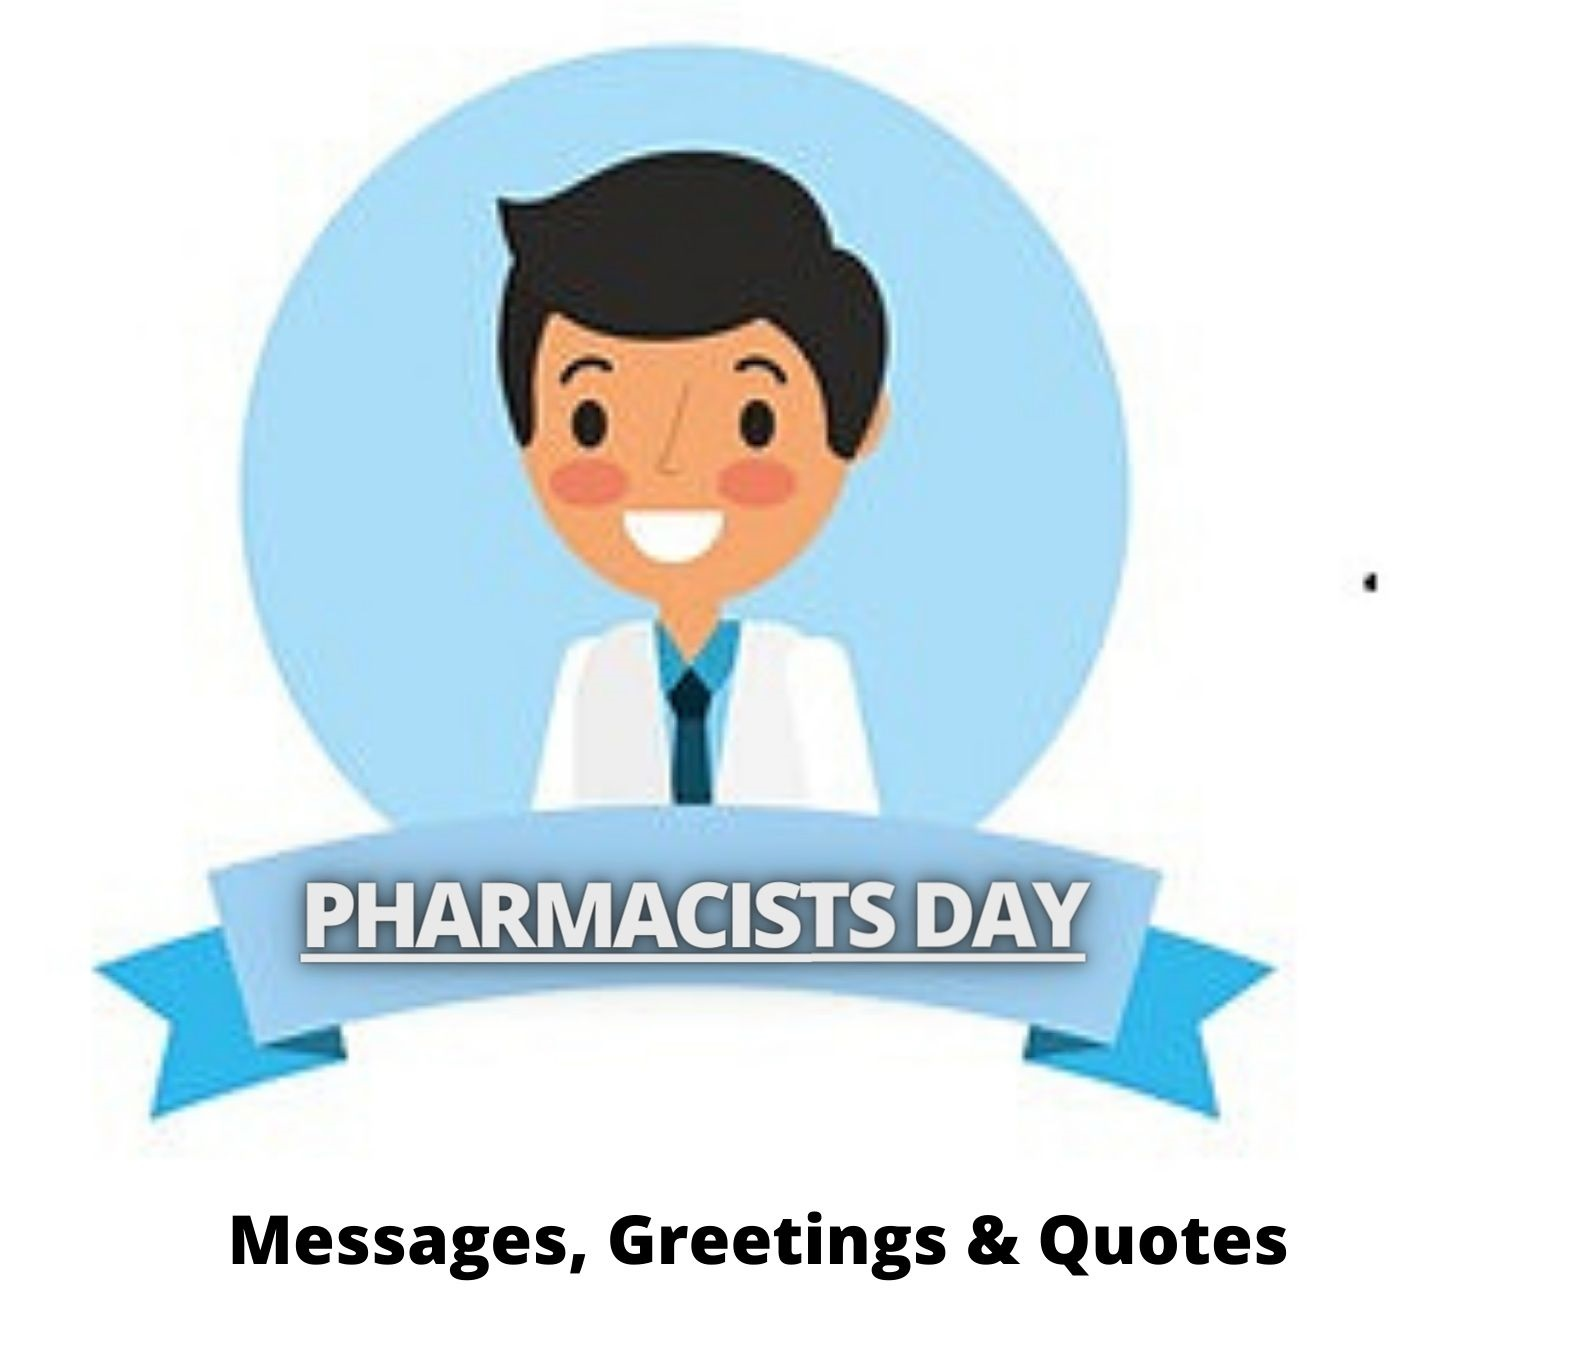 Pharmacists Day Messages, Greetings & Quotes